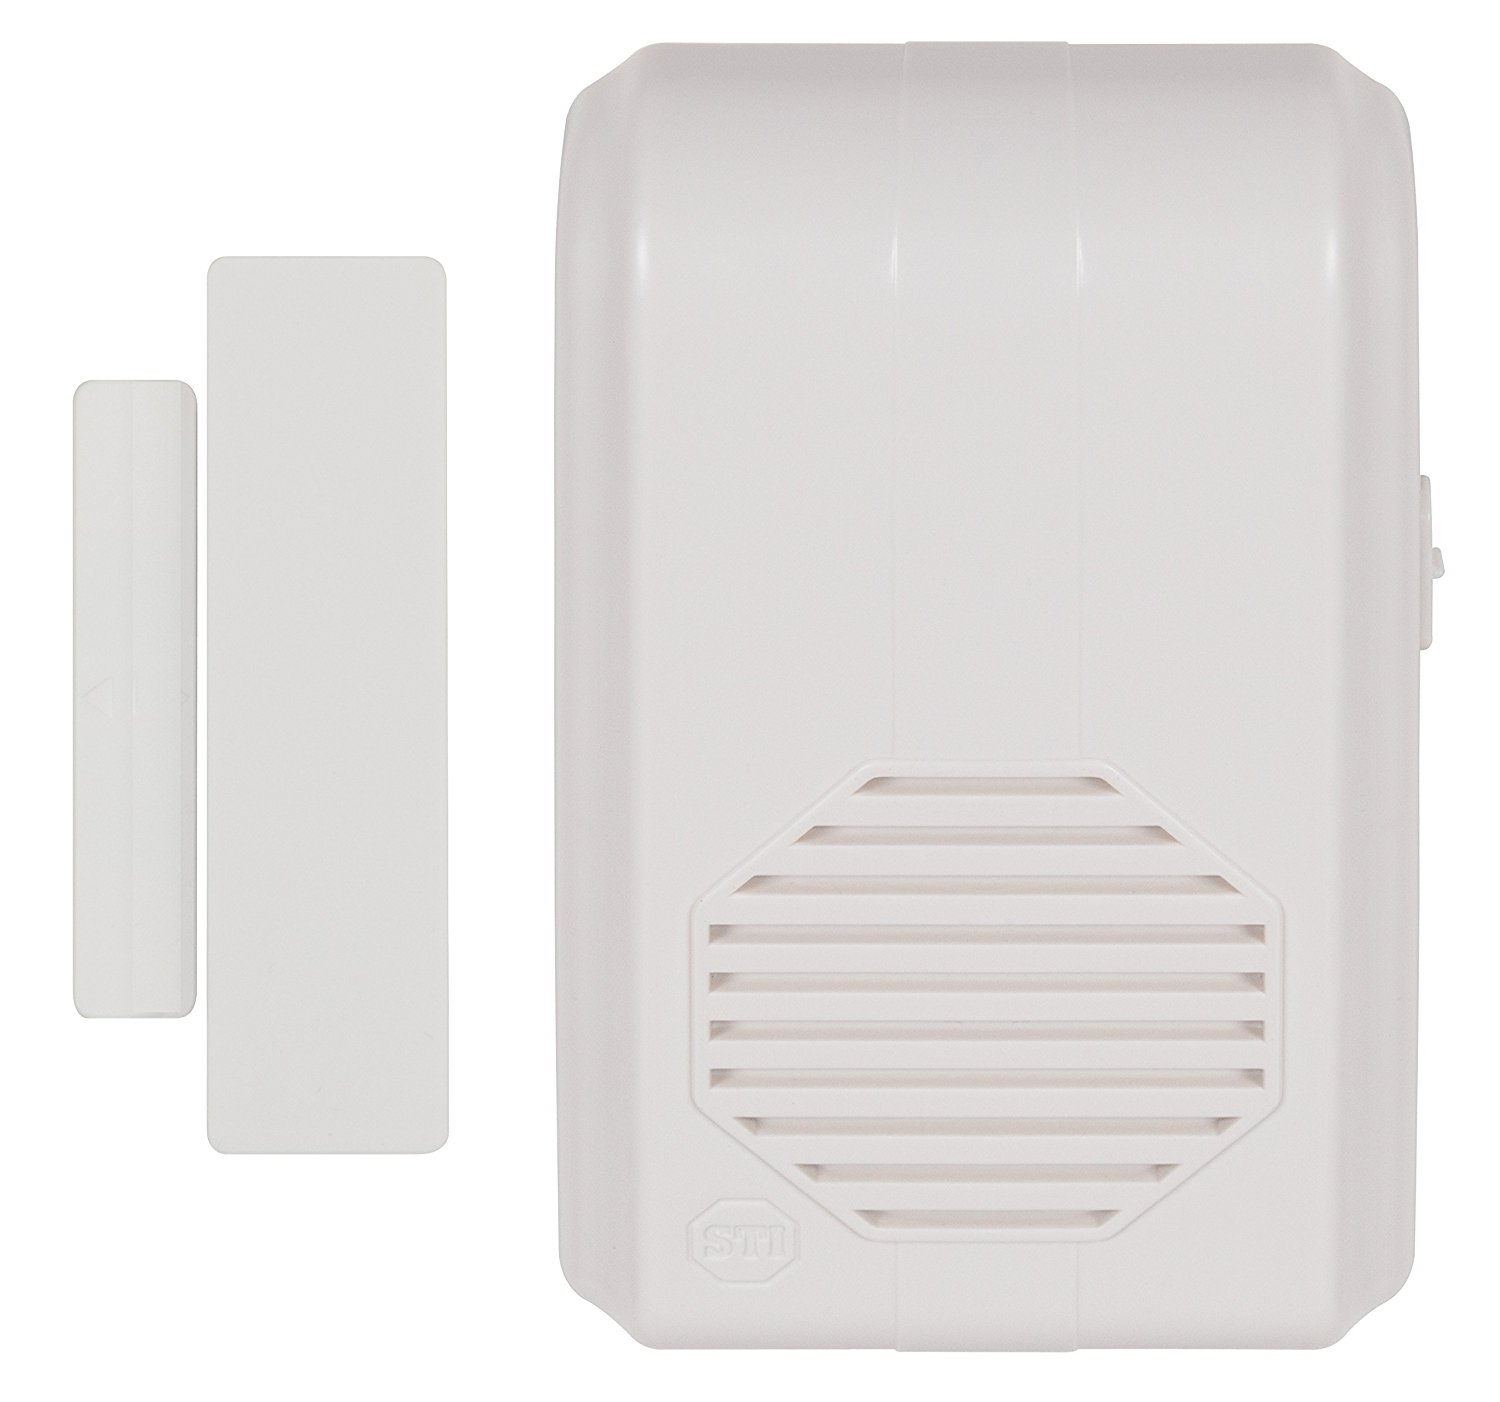 STI-3360 STI WIRELESS ENTRY ALERT CHIME W/RECIVER ************************** CLEARANCE ITEM- NO RETURNS *****ALL SALES FINAL****** **************************